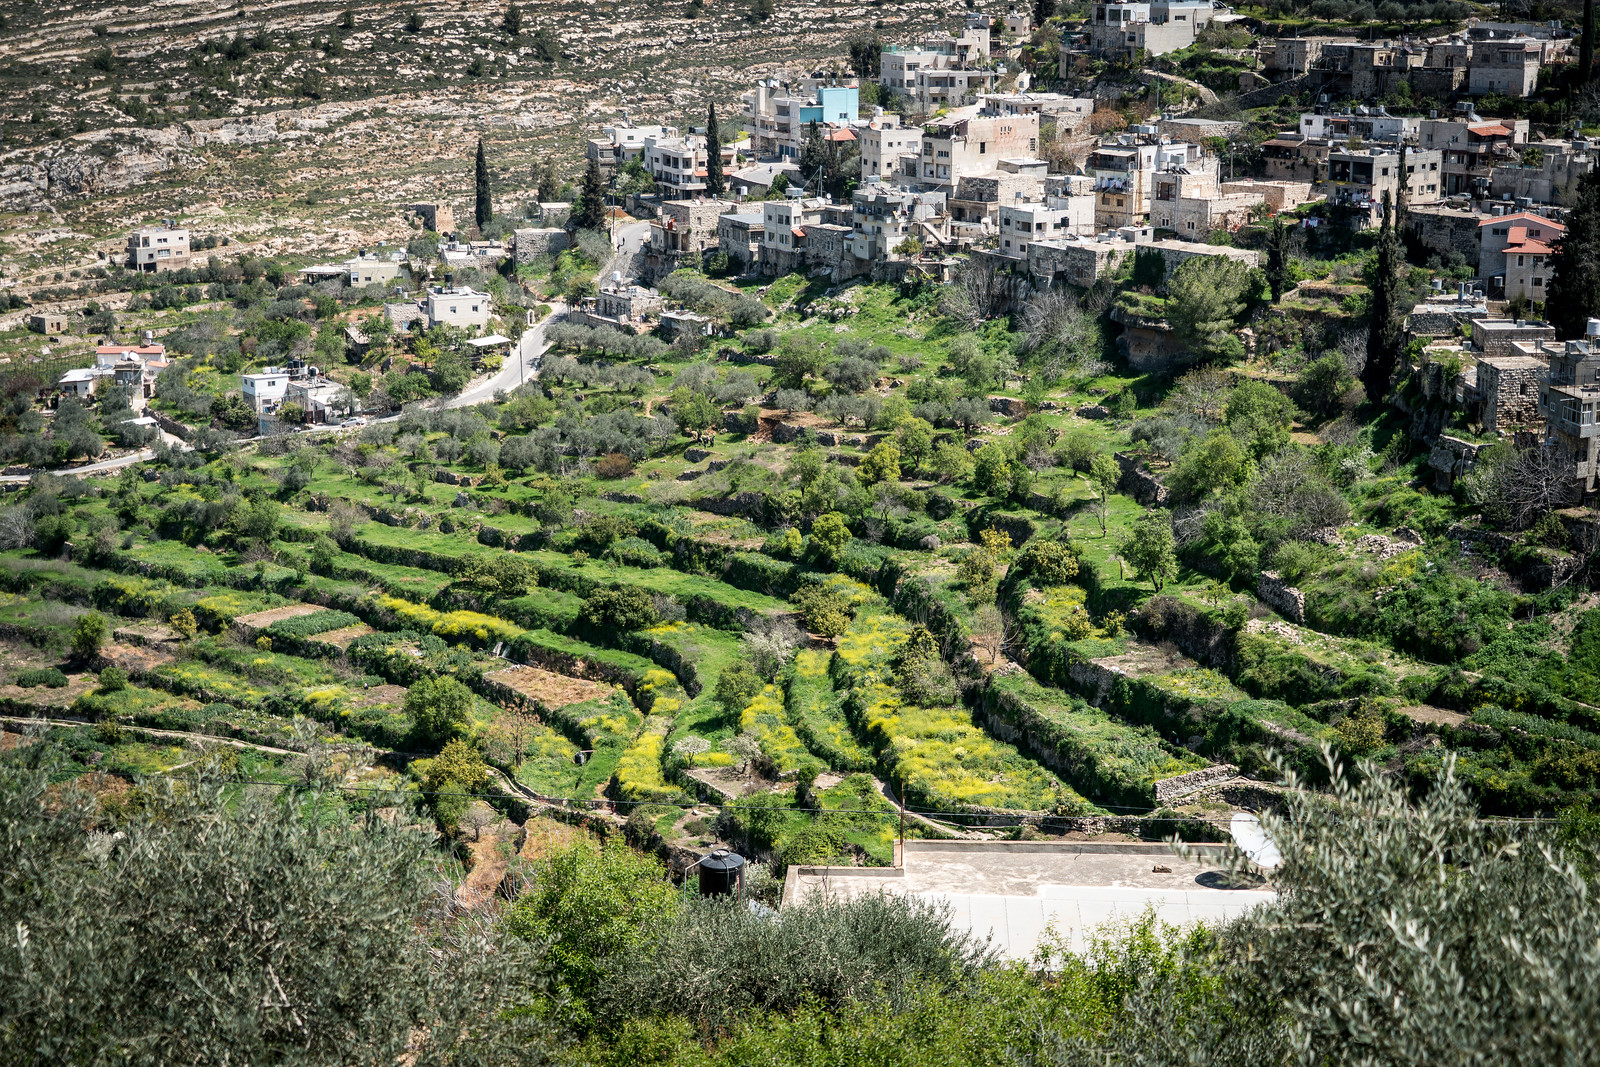 Palestine: Land of Olives and Vines – Cultural Landscape of Southern Jerusalem, Battir